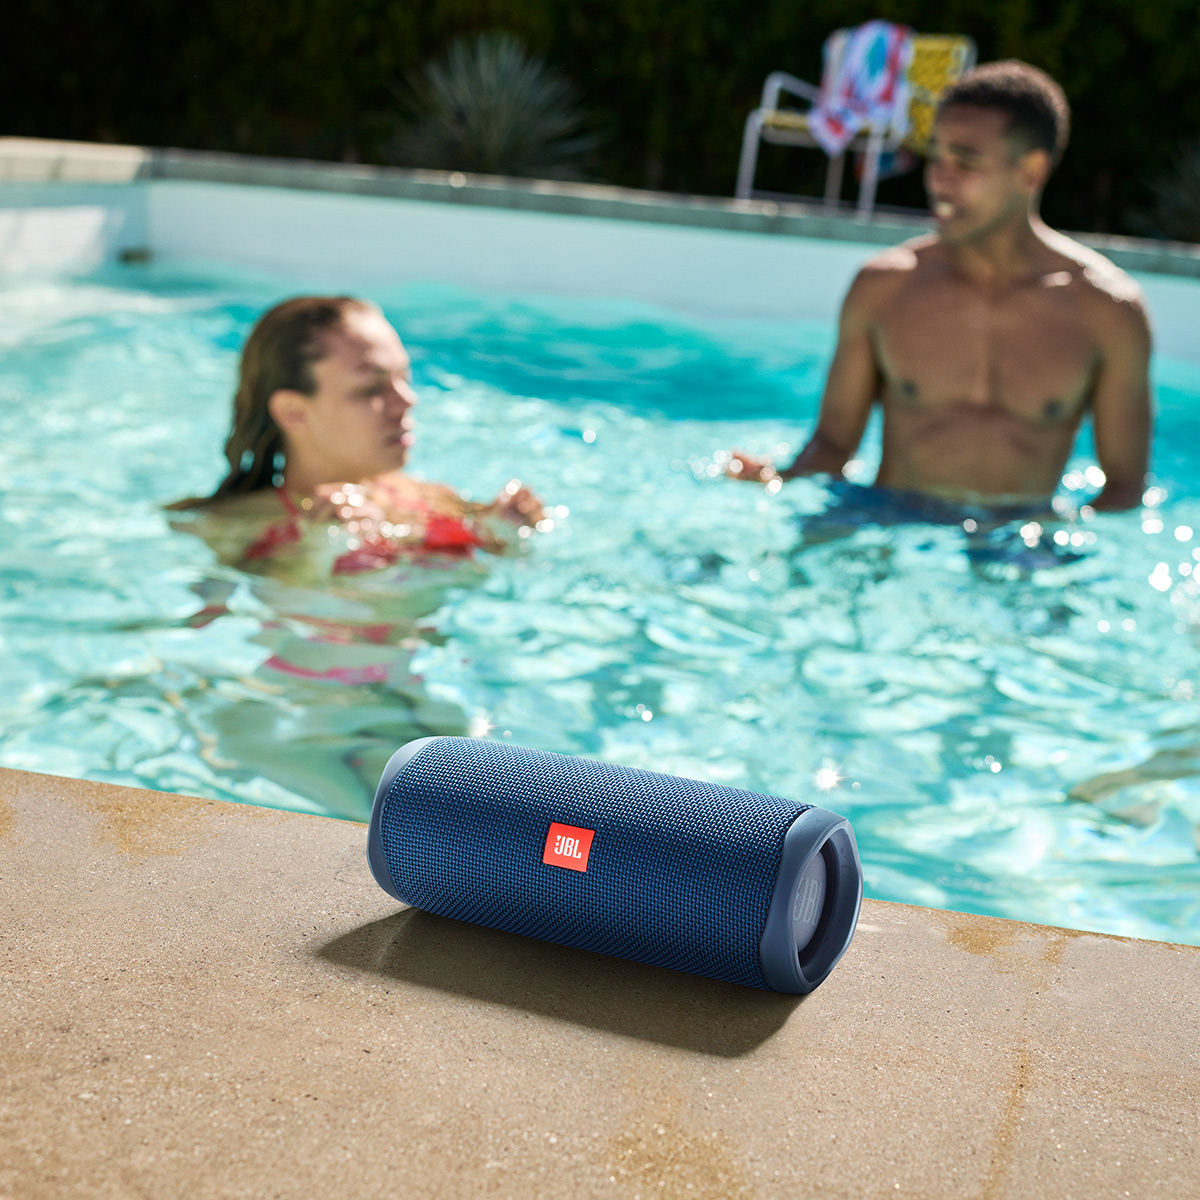 JBL-Flip-5-Portable-Waterproof-Bluetooth-Speaker thumbnail 11